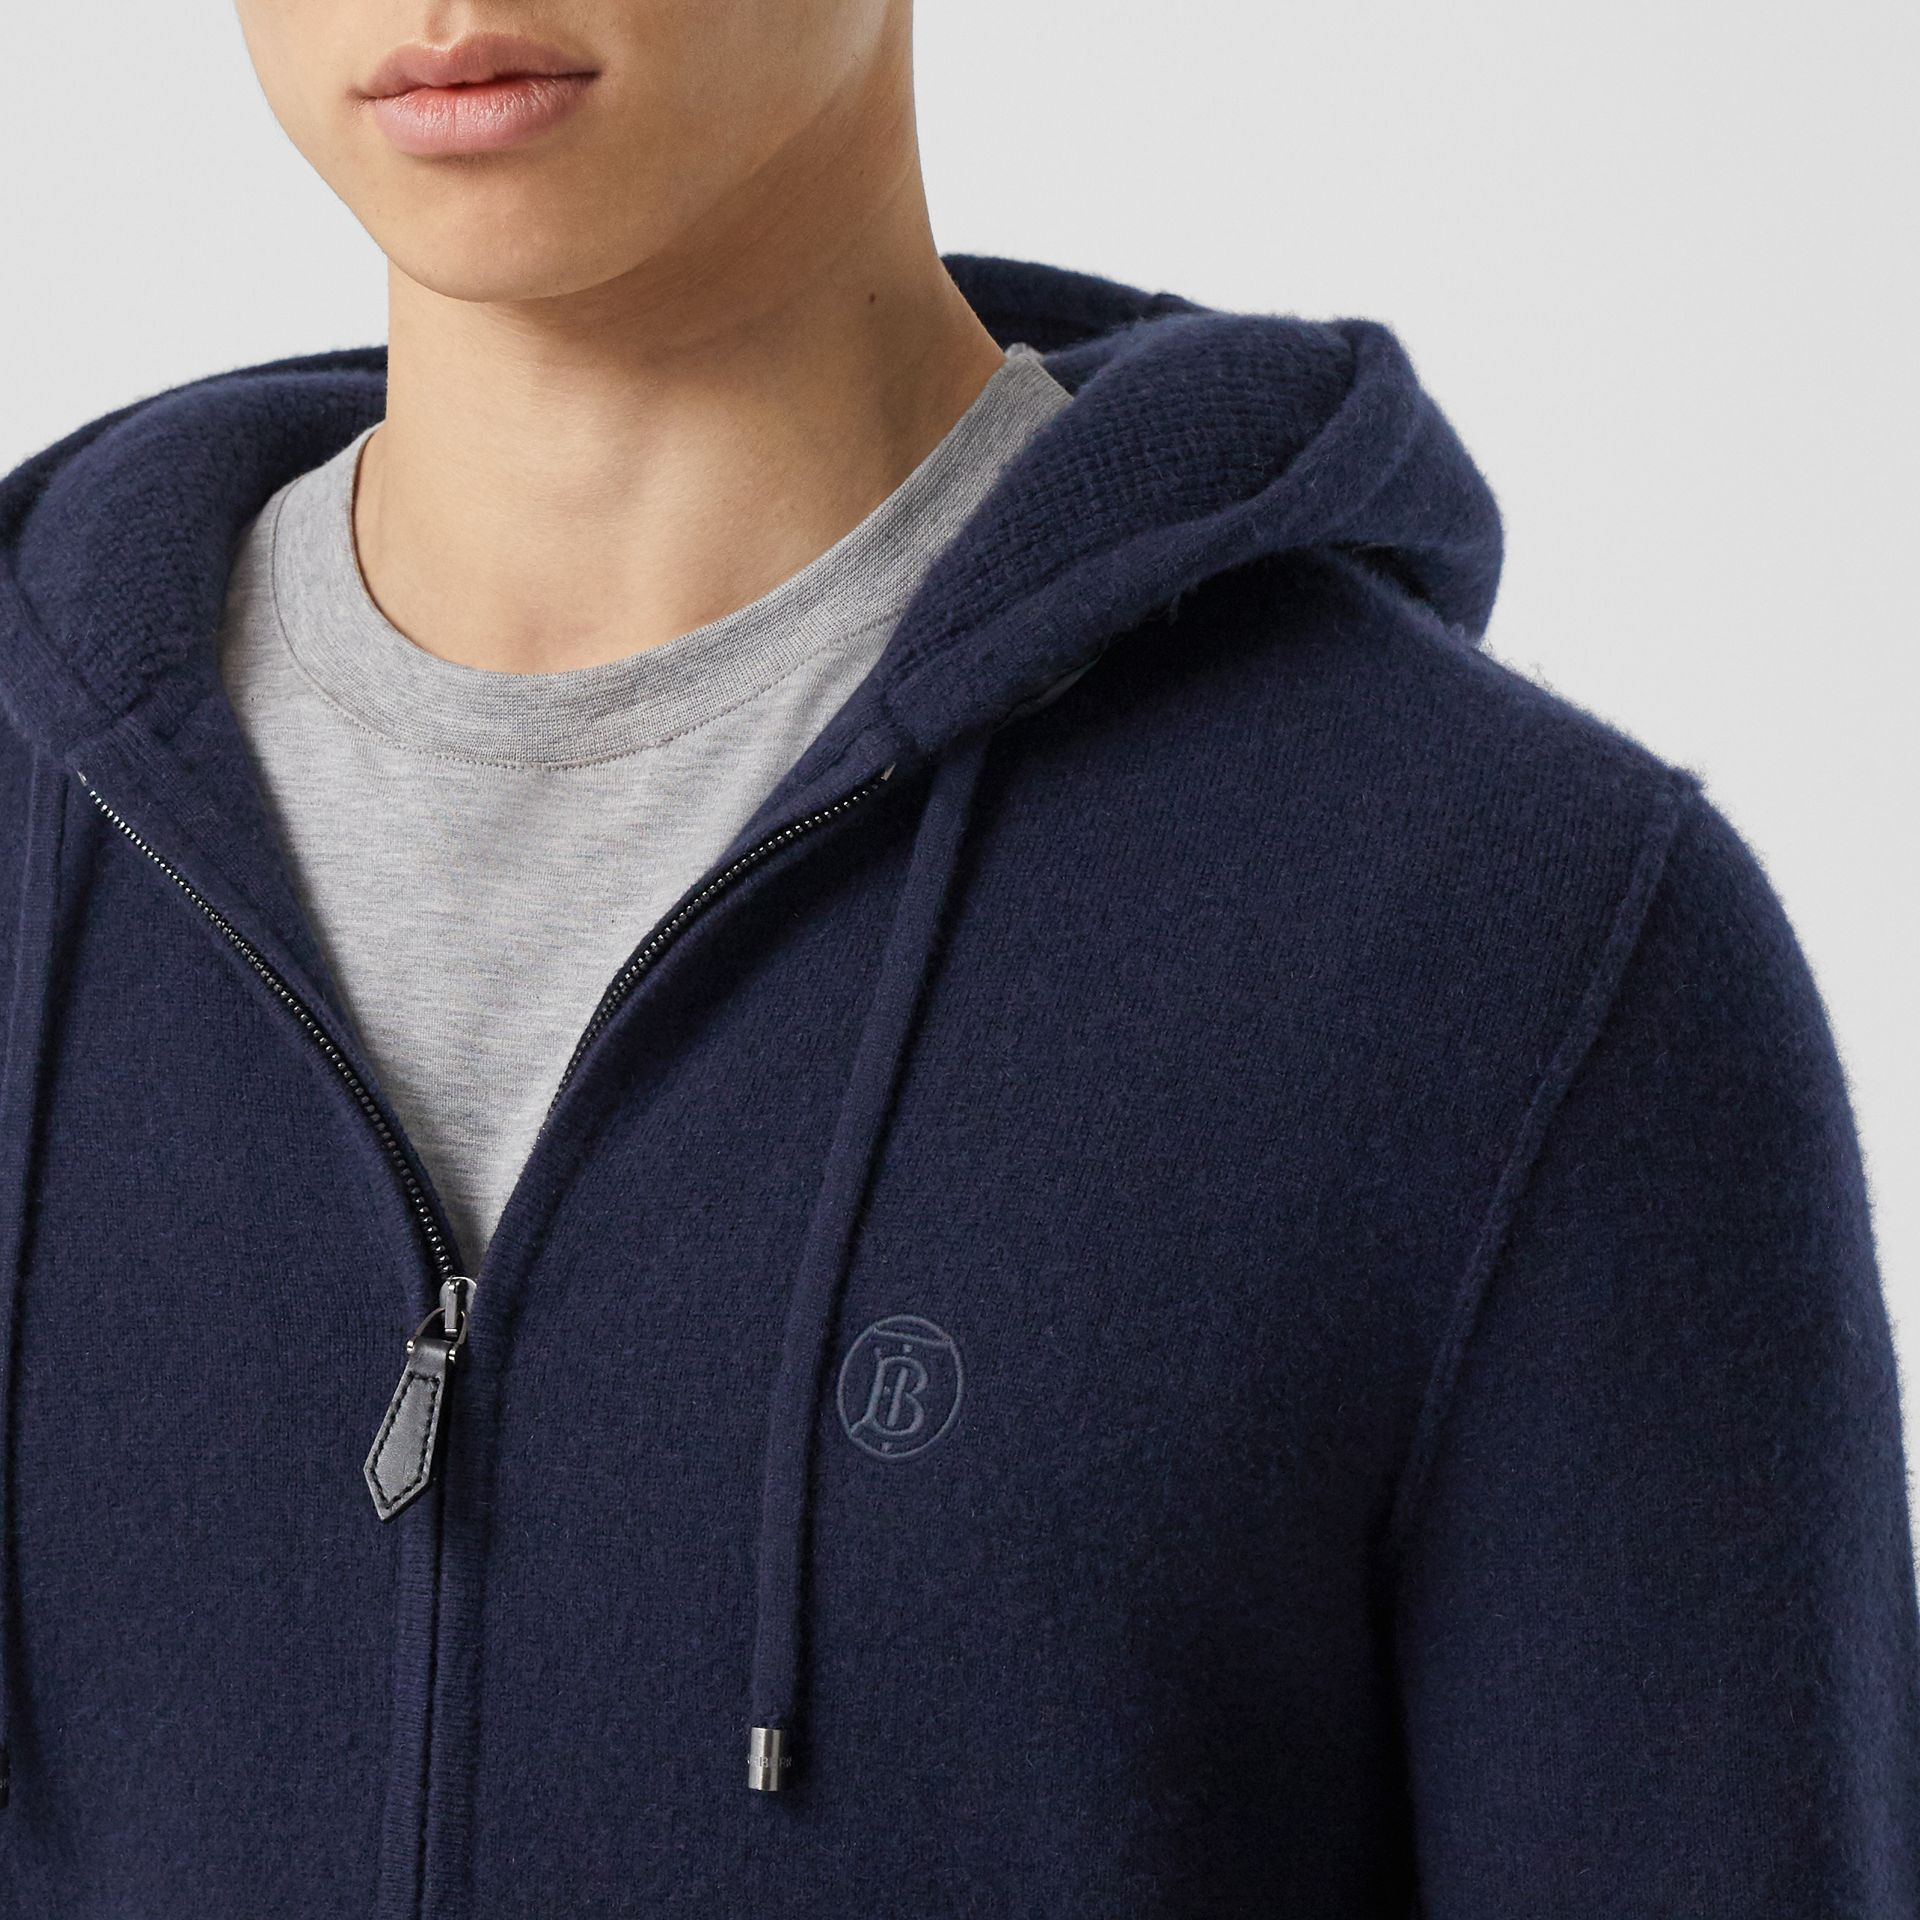 Monogram Motif Cashmere Blend Hooded Top in Navy - Men | Burberry - gallery image 1